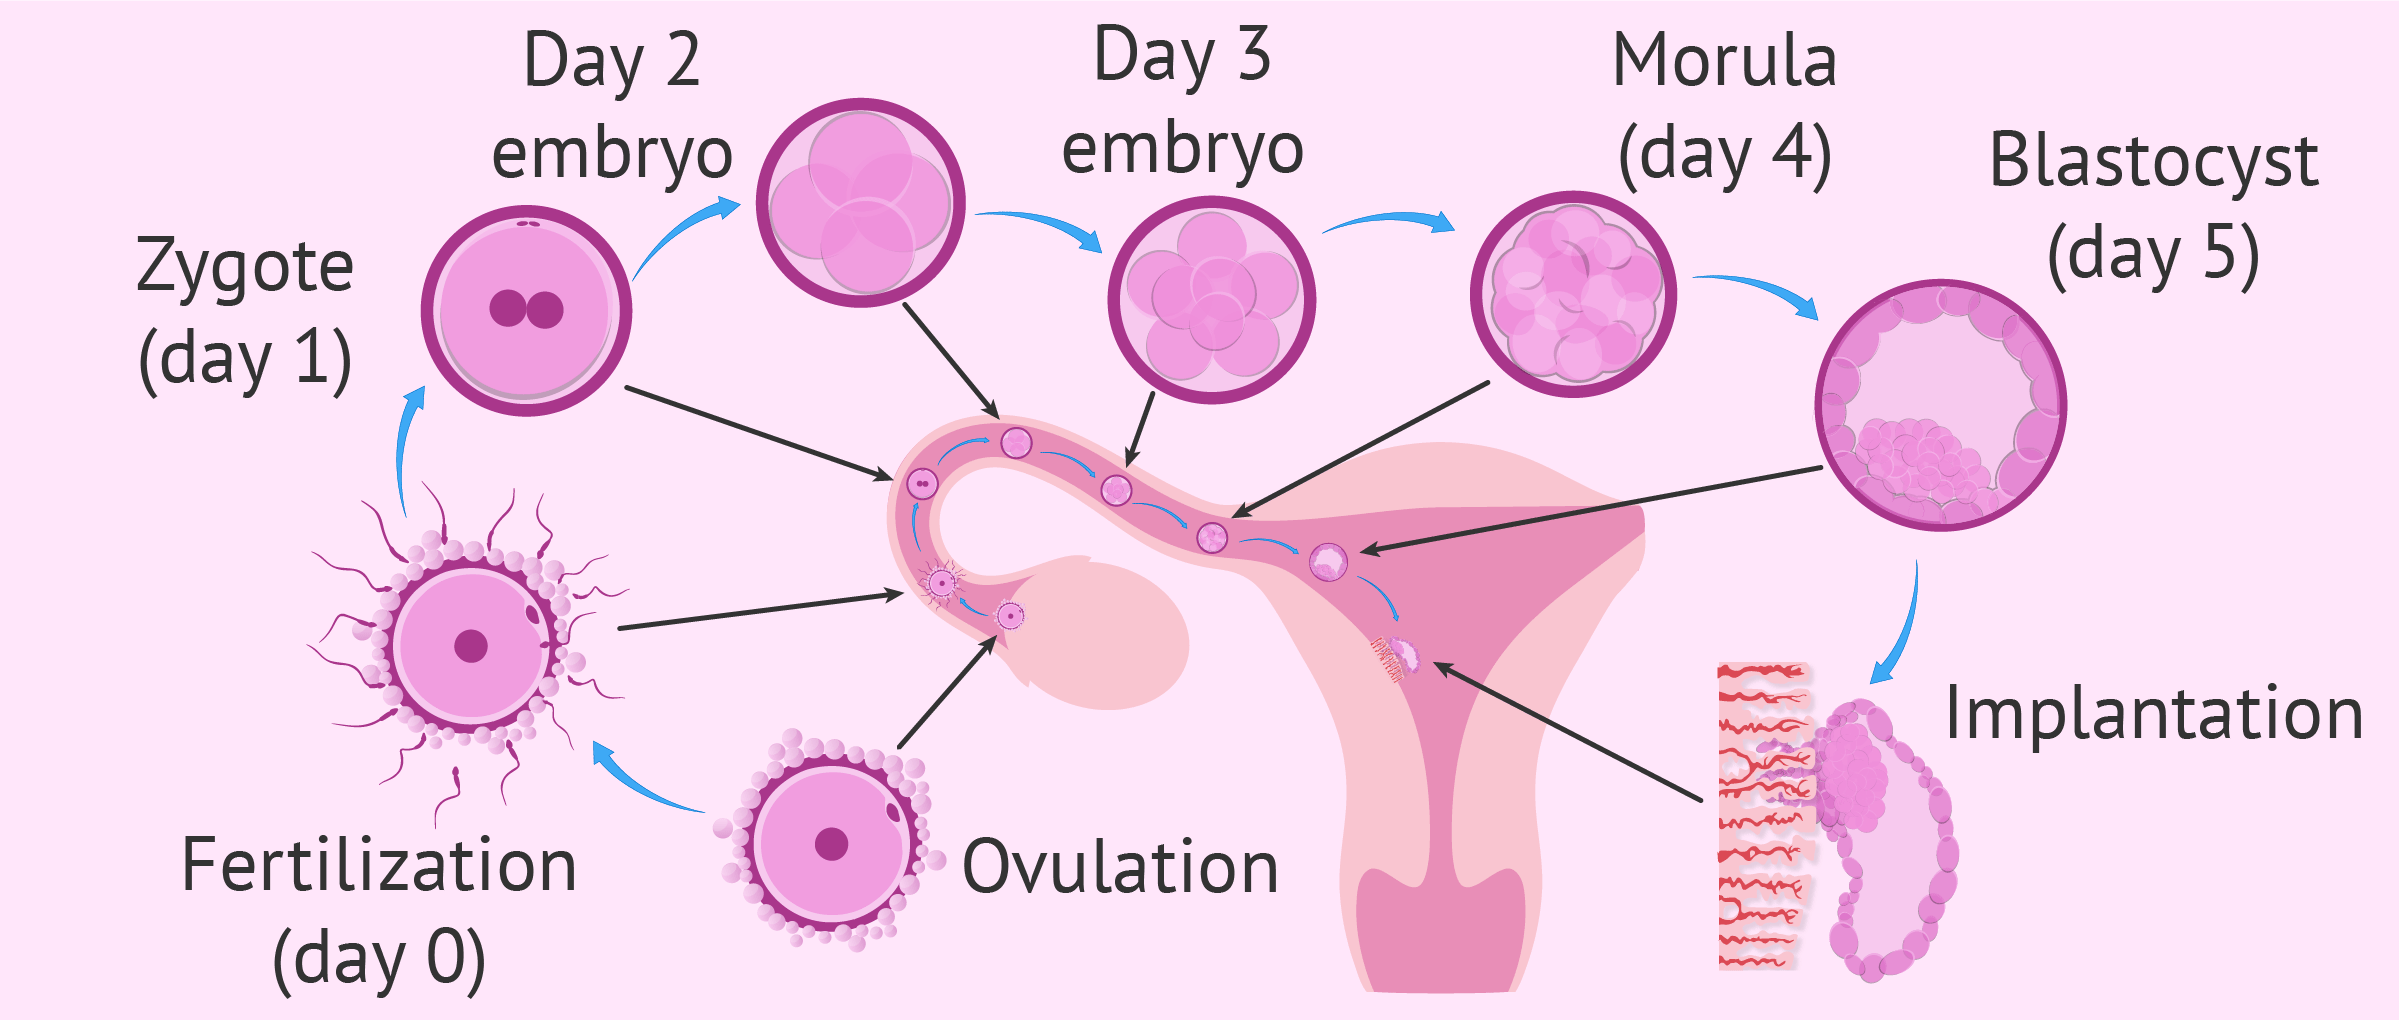 Embryo implantation symptoms